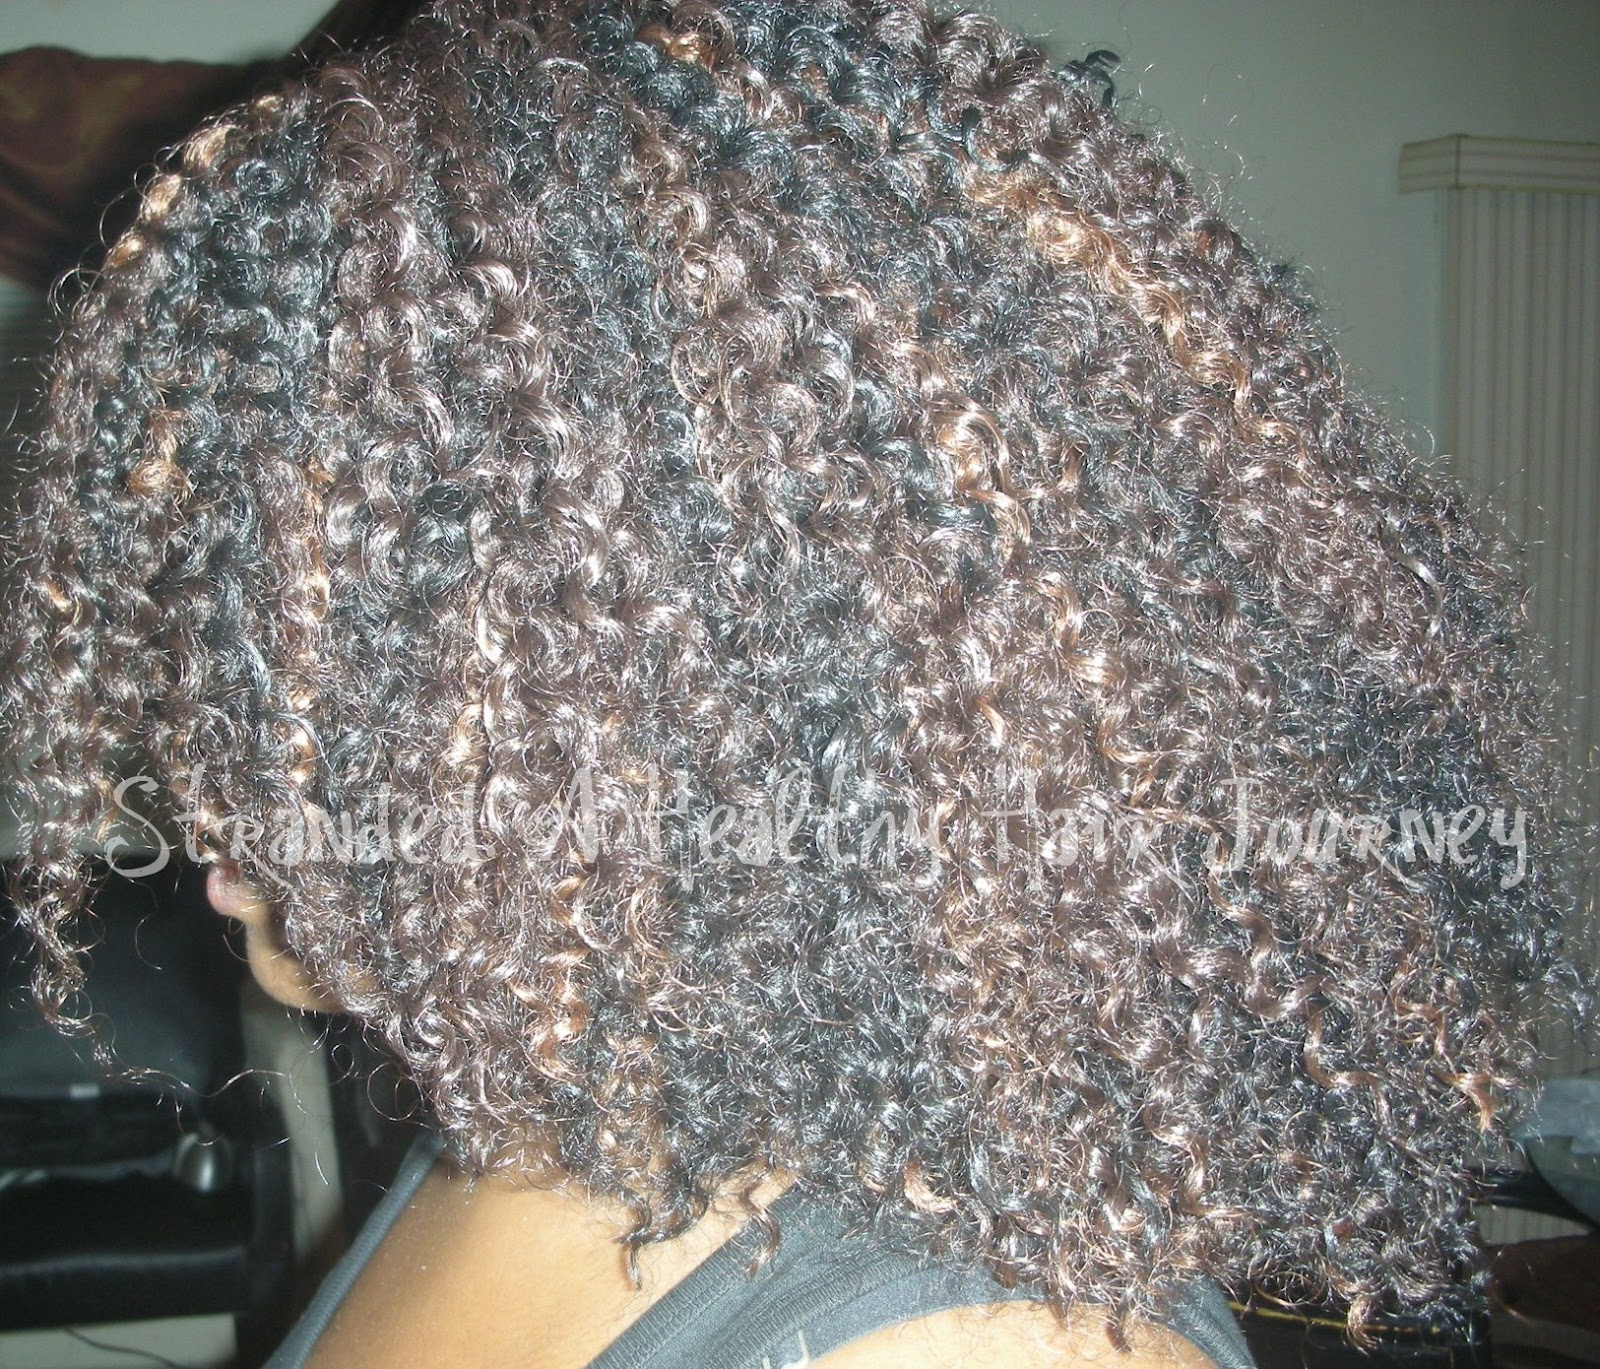 Crochet Braids Swimming : Have you ever tried crochet braids? How long did they hold up for you ...